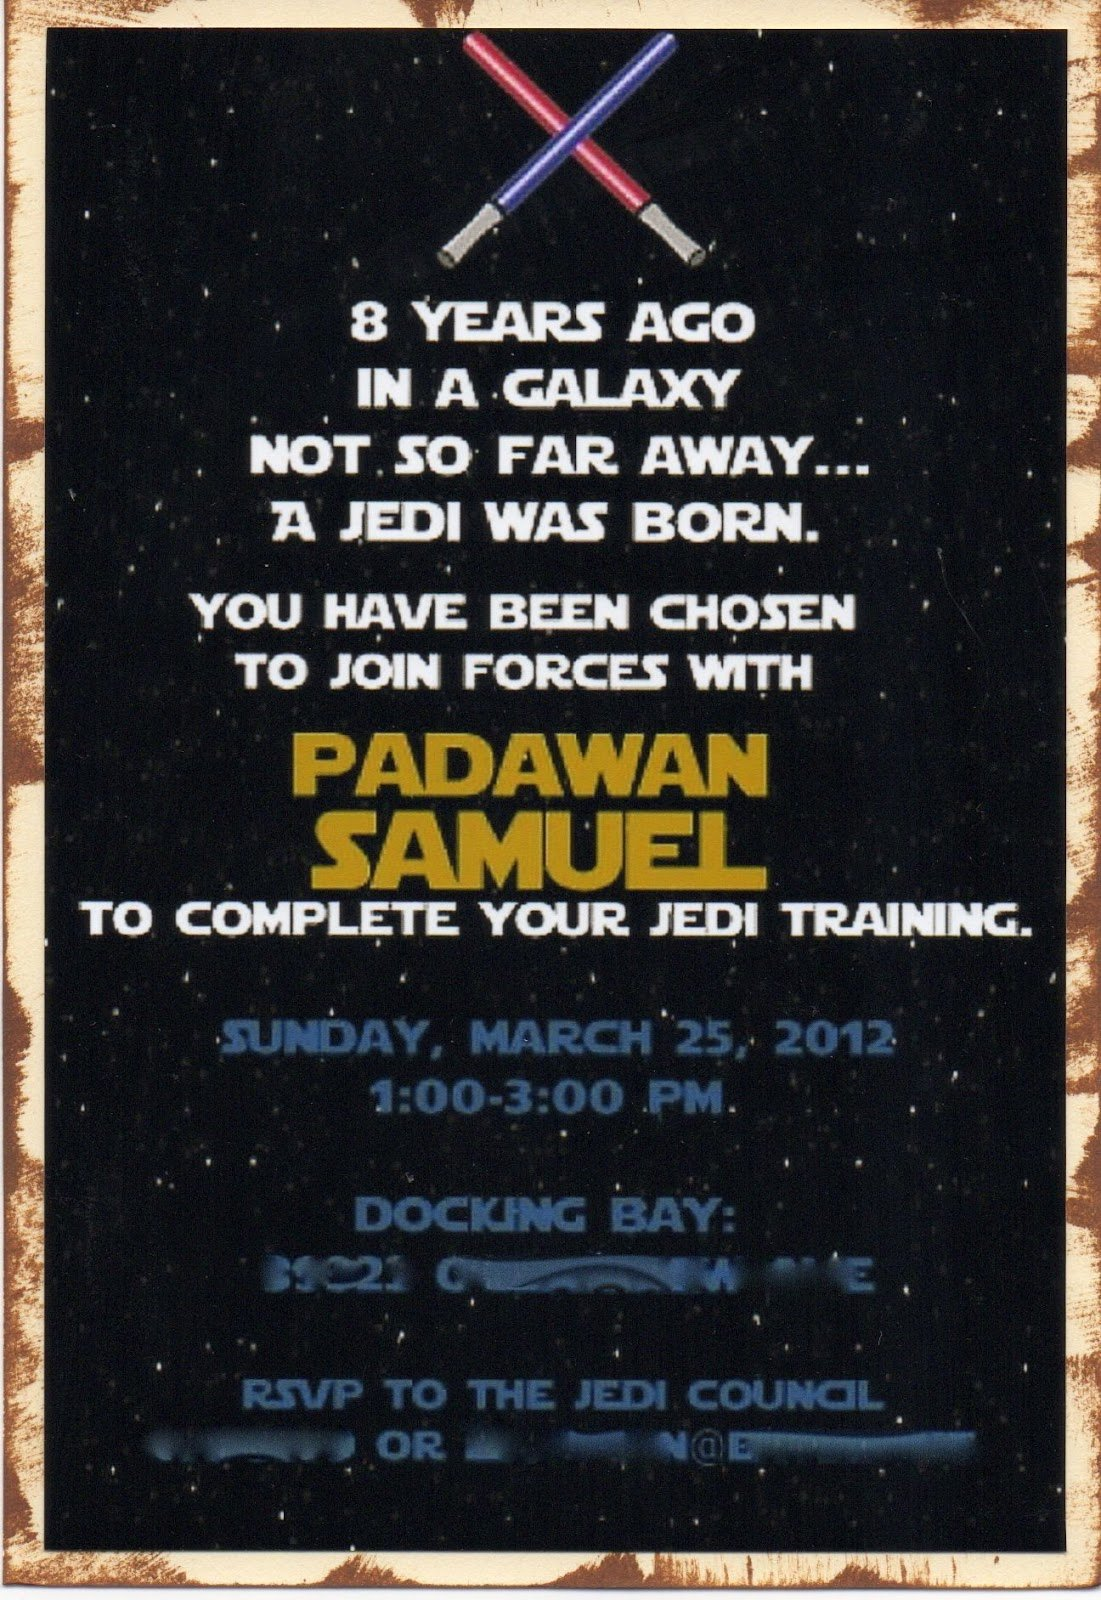 Star Wars Party Invitation Elegant Another Babin Creation Star Wars Birthday Invitation